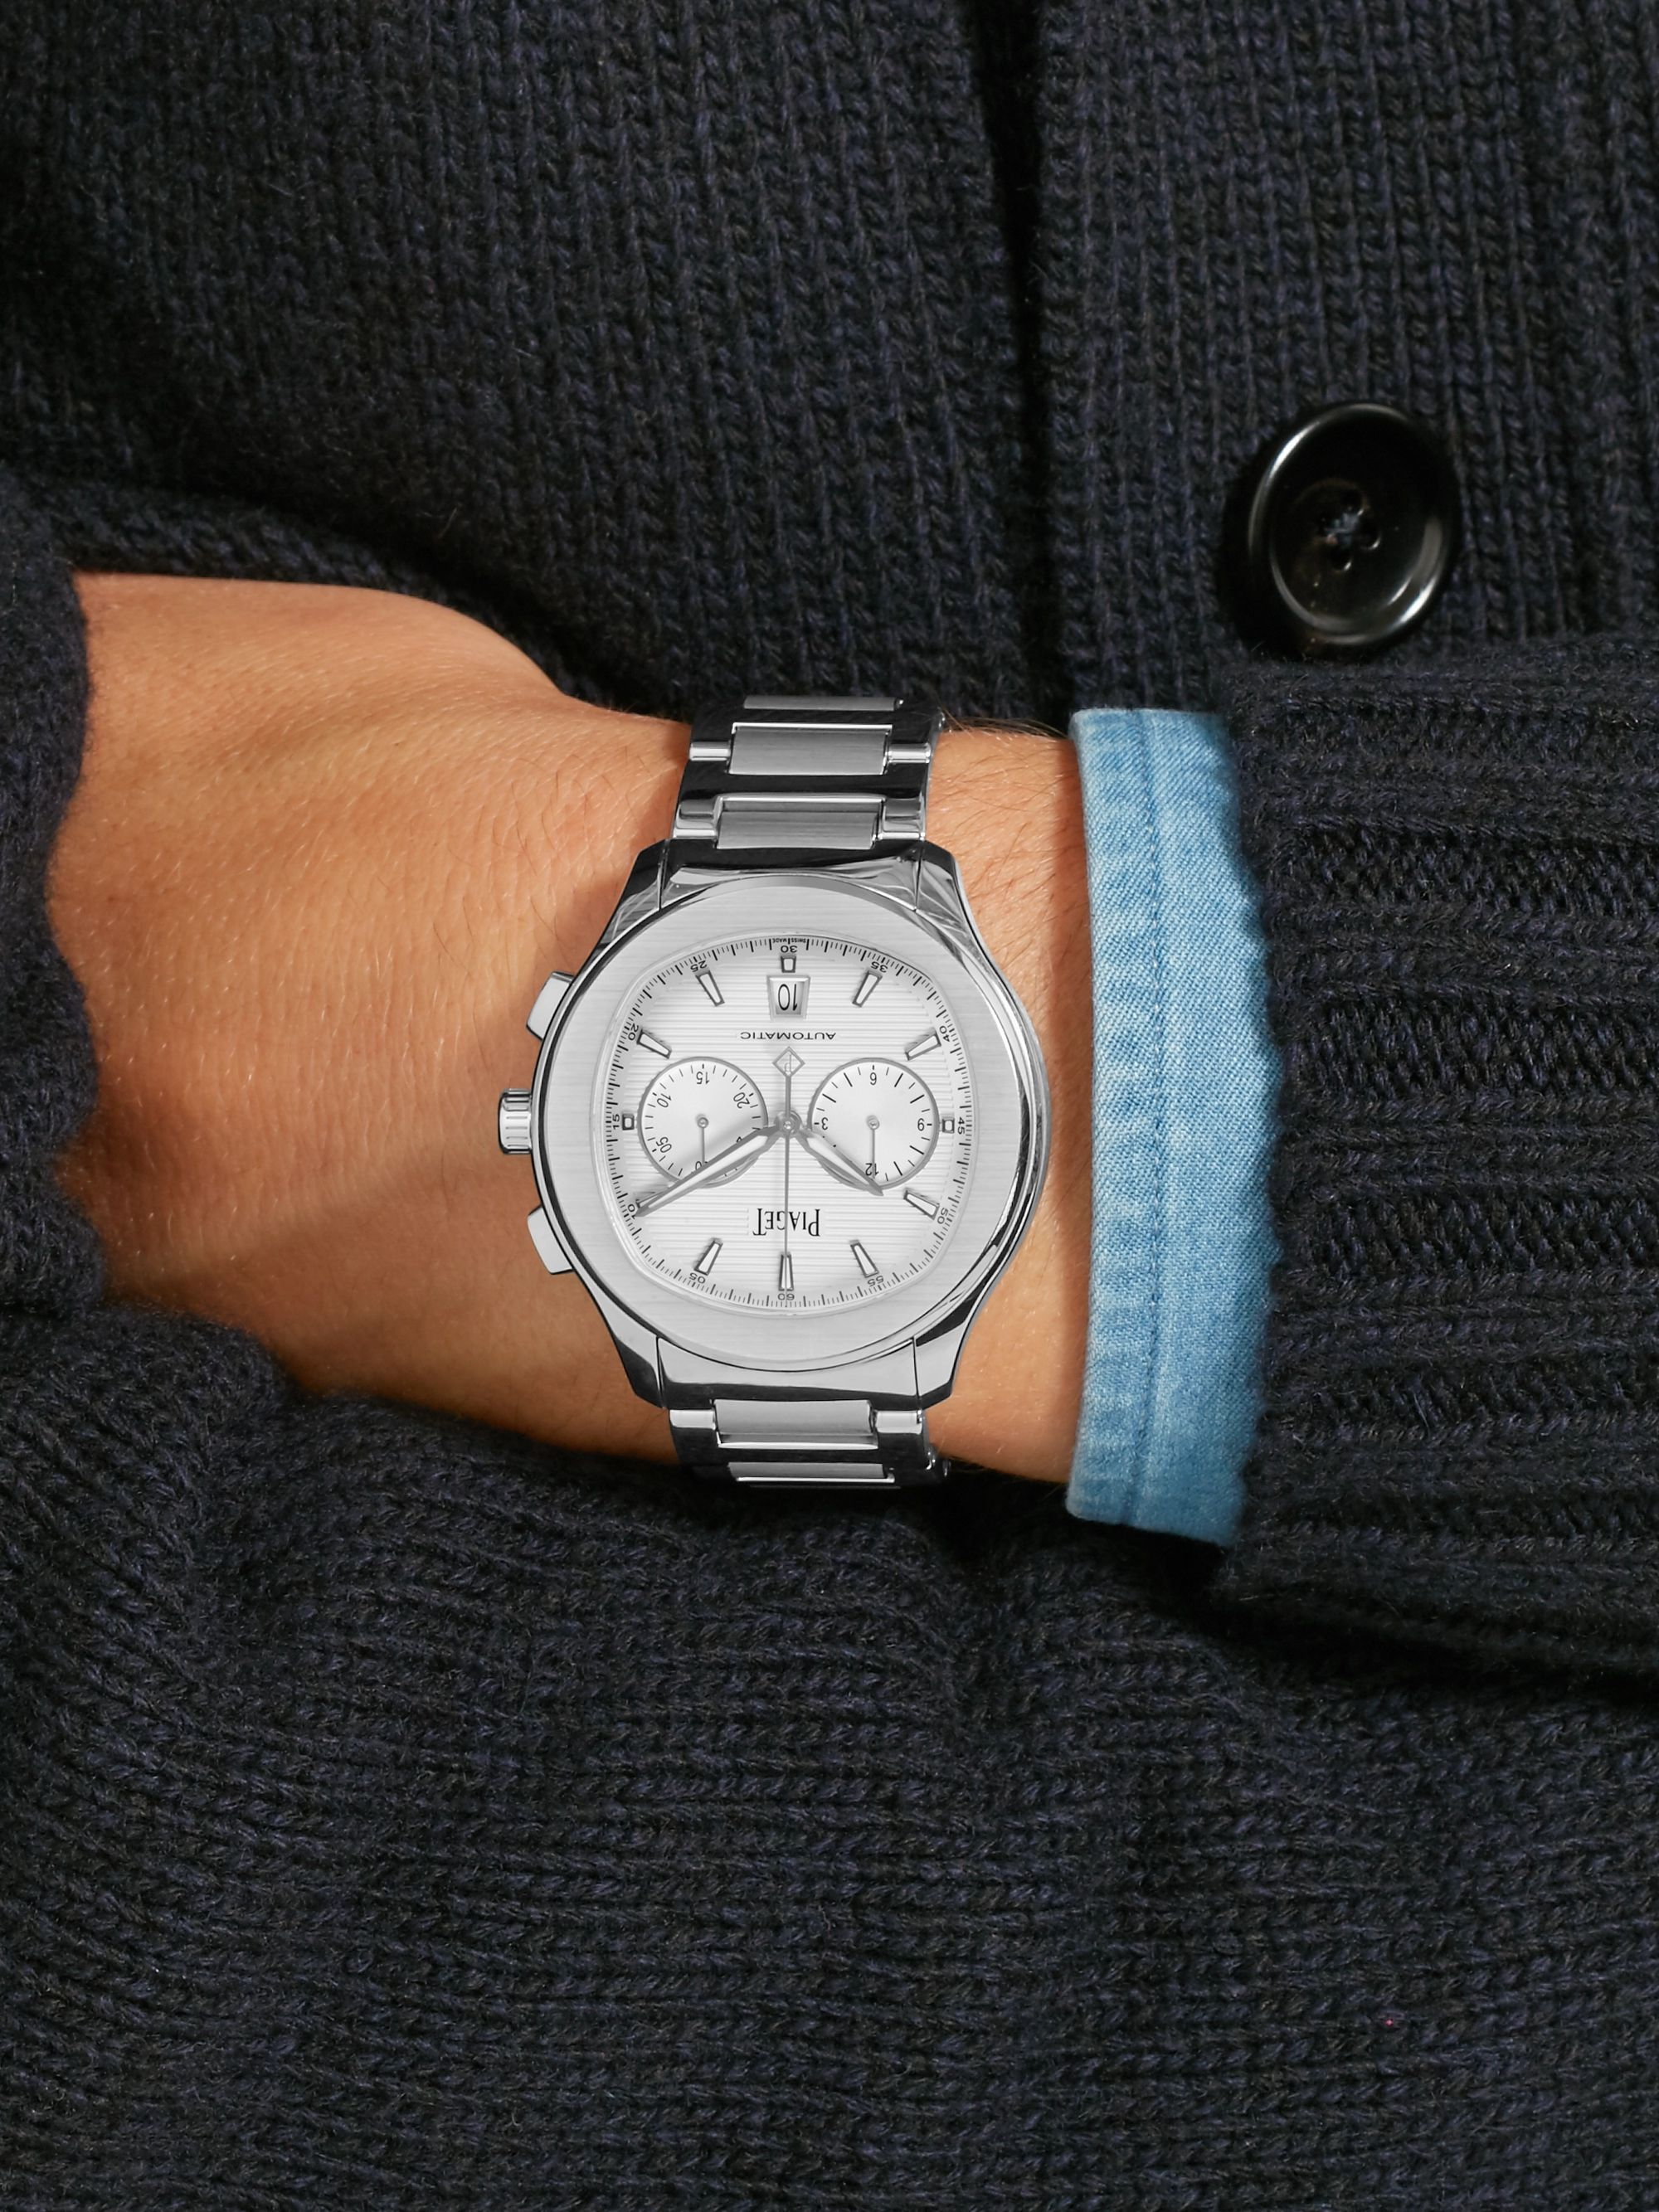 Piaget Polo S Chronograph 42mm Stainless Steel Watch, Ref. No. G0A41004